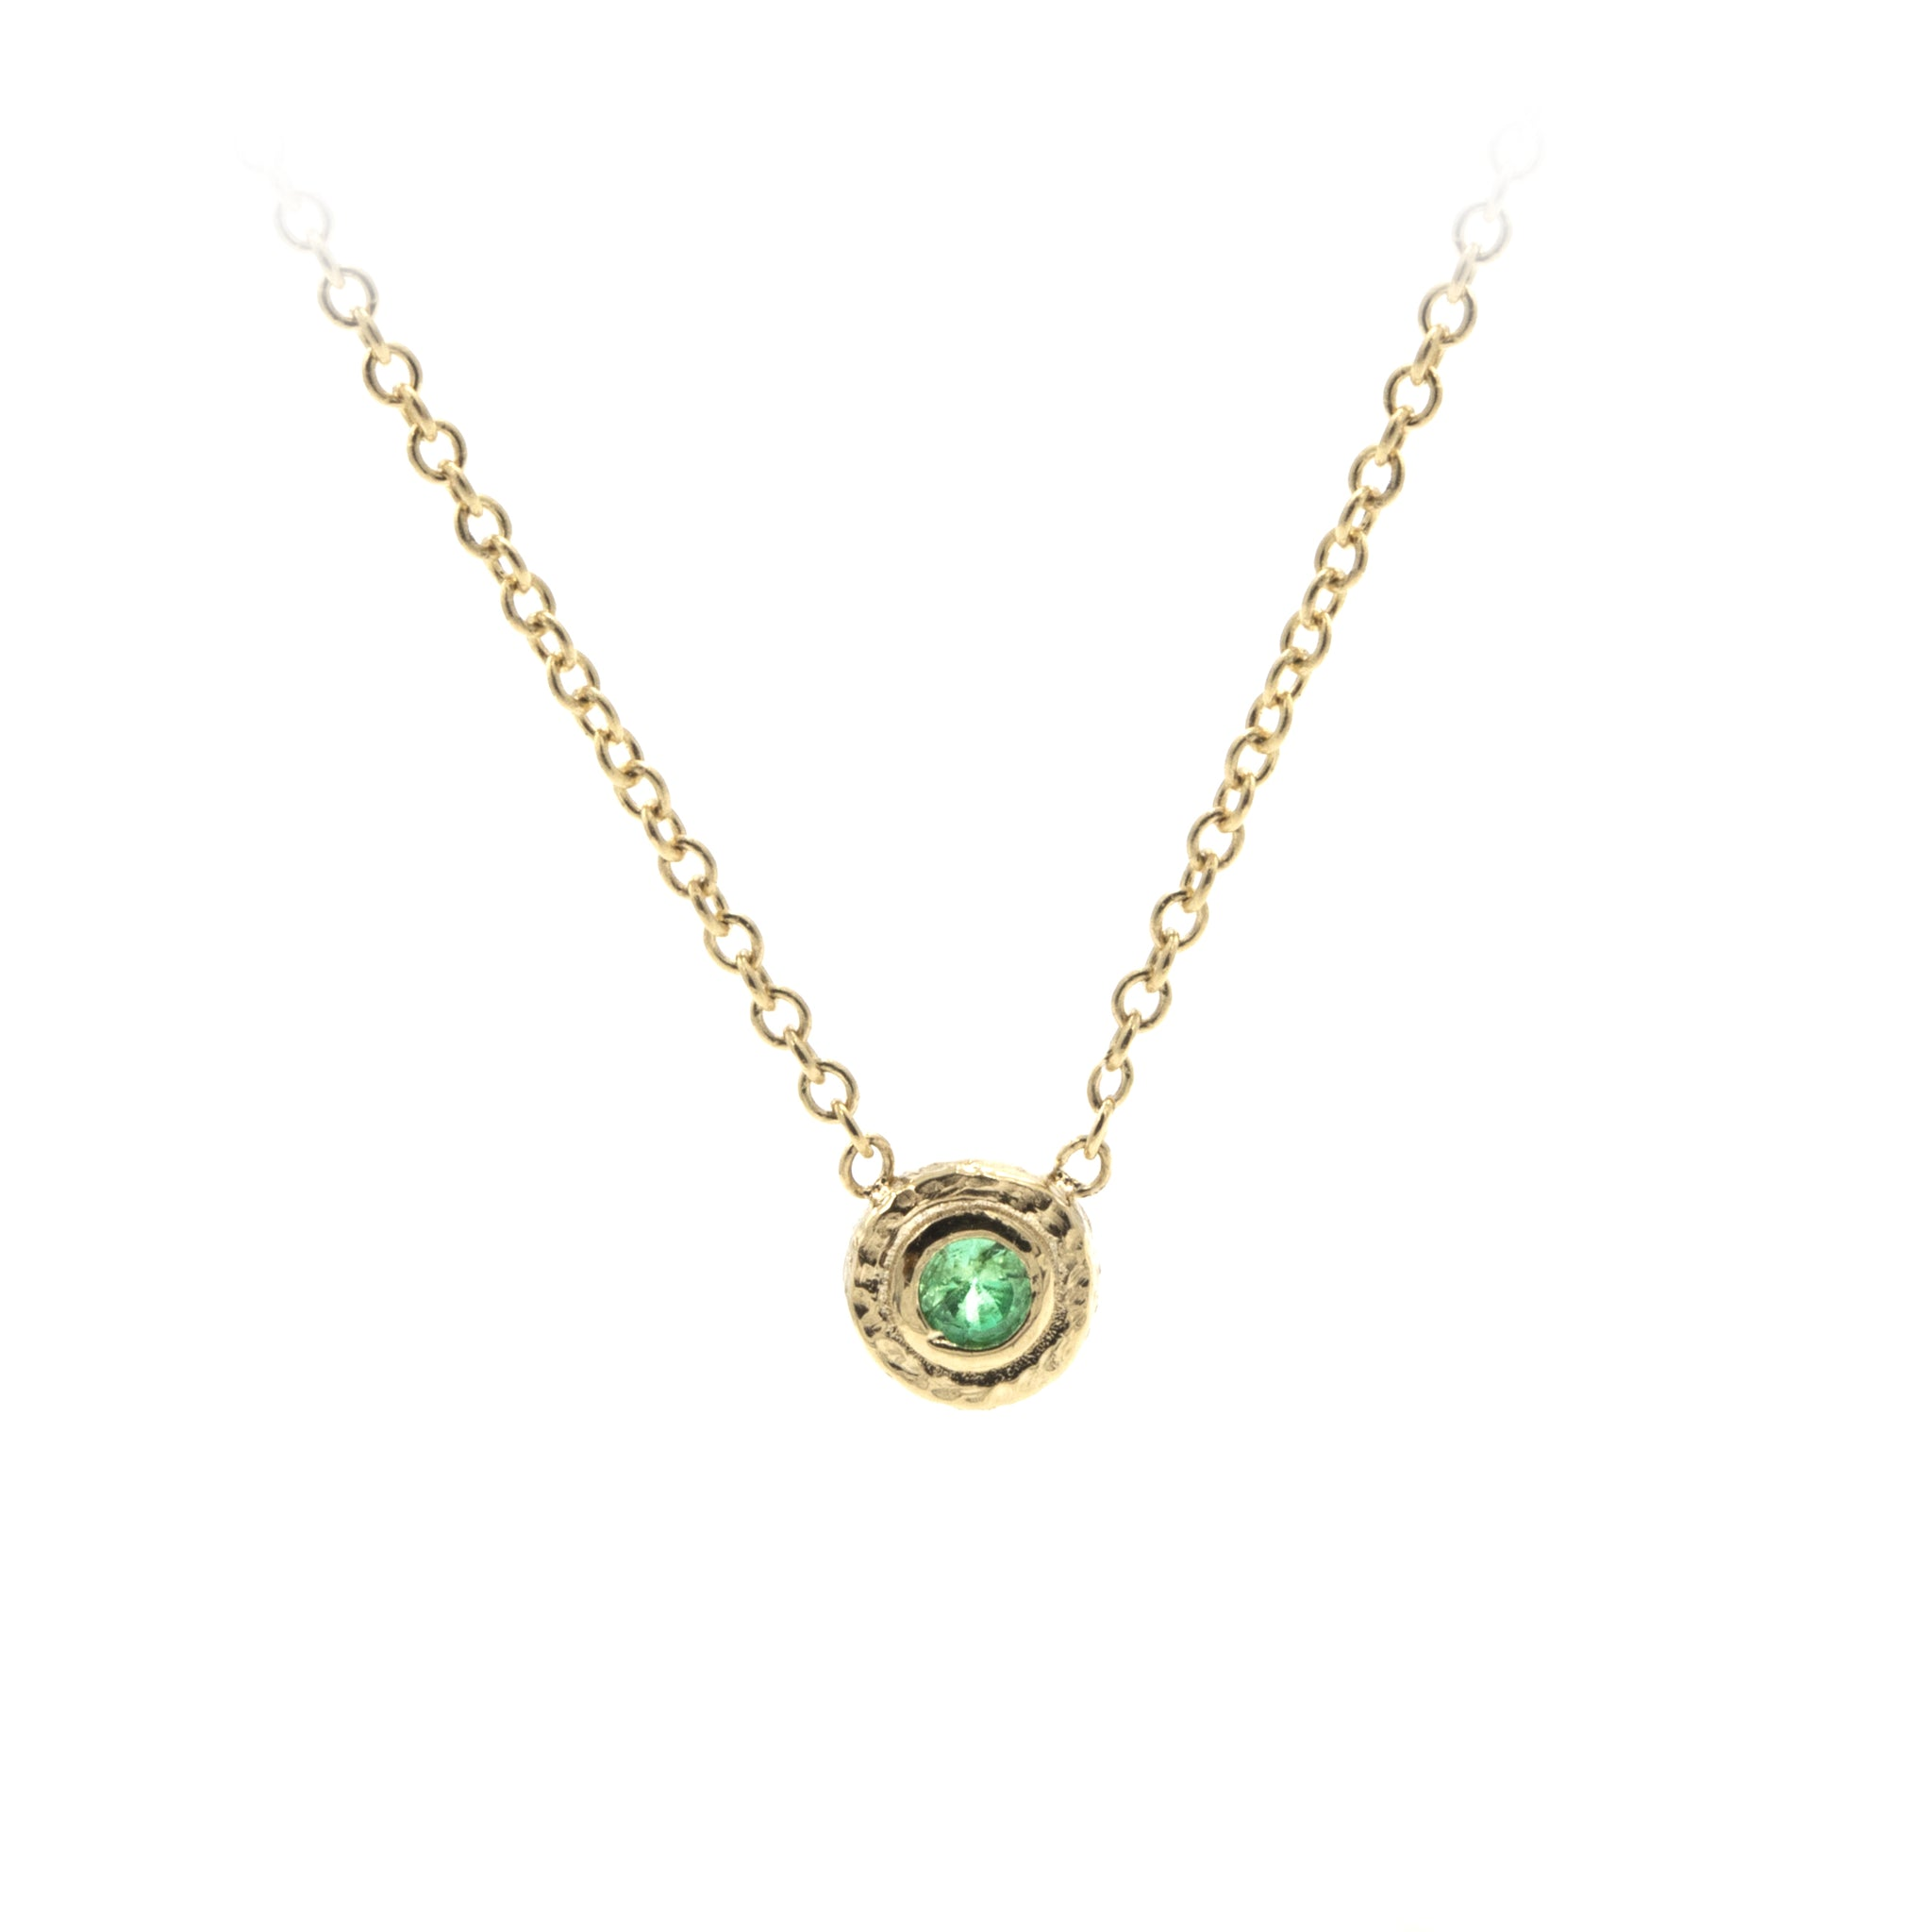 Nesting Gem Necklace